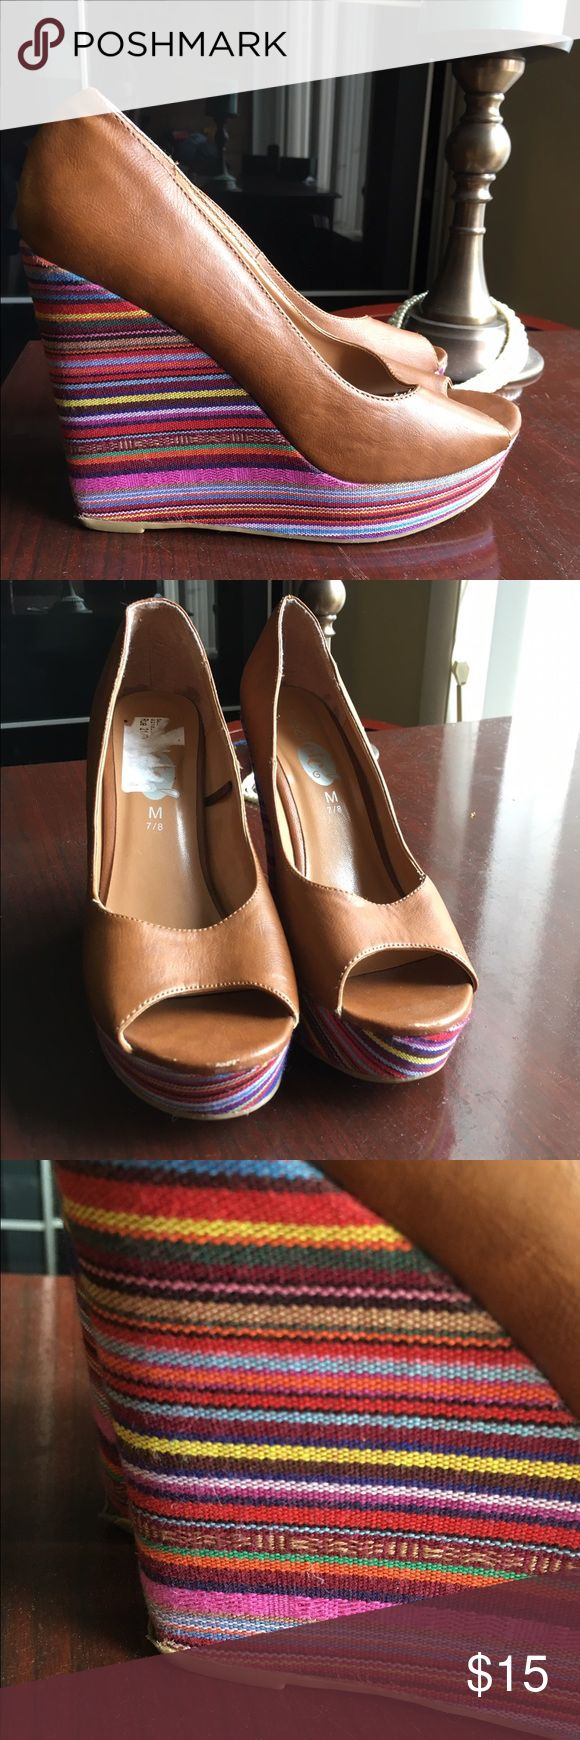 Rue 21 Colorful Stripe Wedge Heel These are a flashy pair of heels! Size 7/8 M, their gently used and colorful as ever. Colors are orange, yellow, purple, Maroon, indigo, light blue, etc. the main section of the show is tan. Rue 21 Shoes Heels